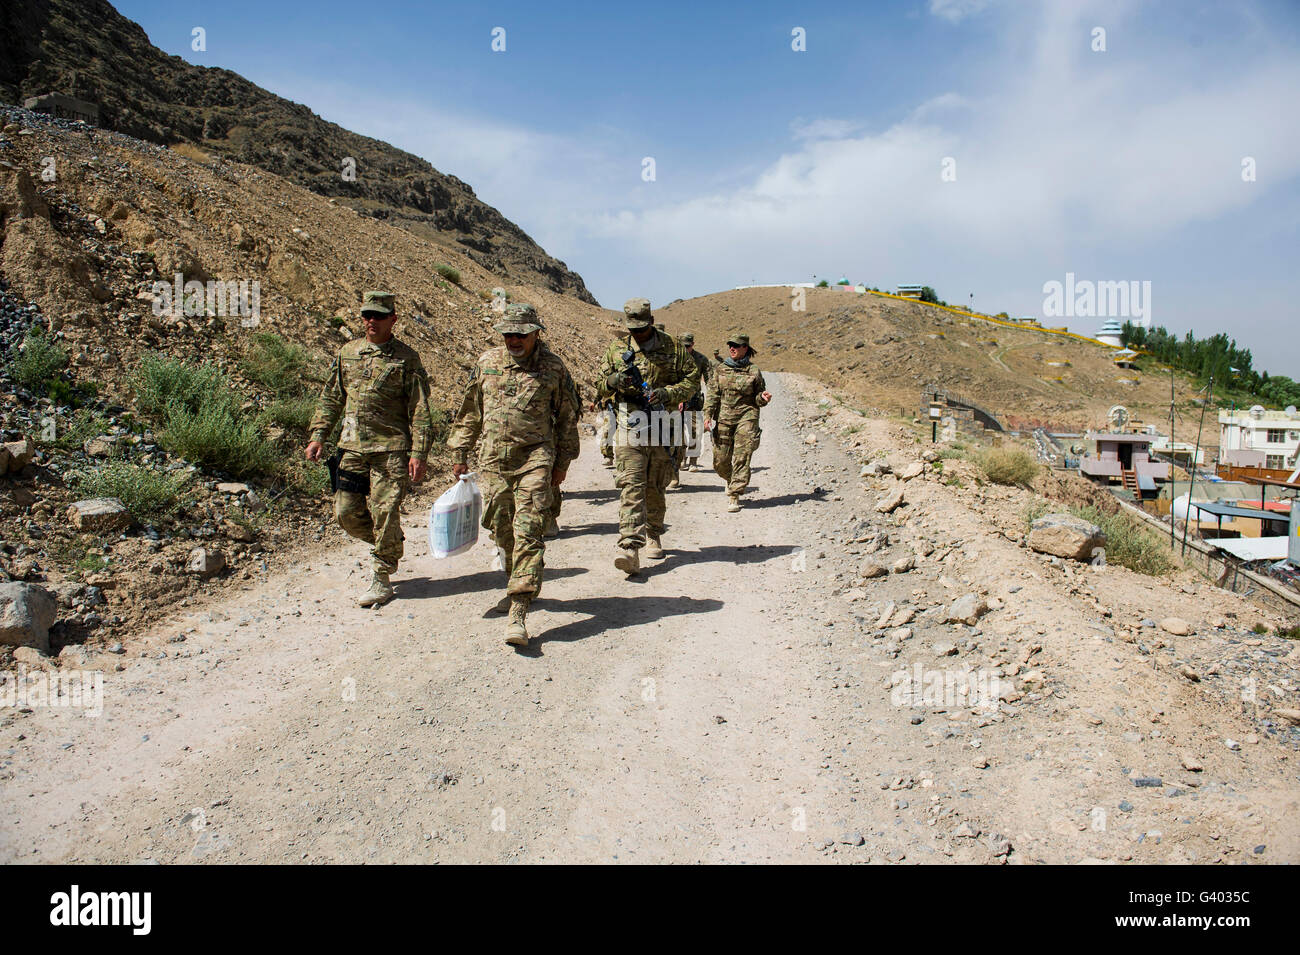 Members of the Kentucky National Guard in Arghandab, Afghanistan. - Stock Image